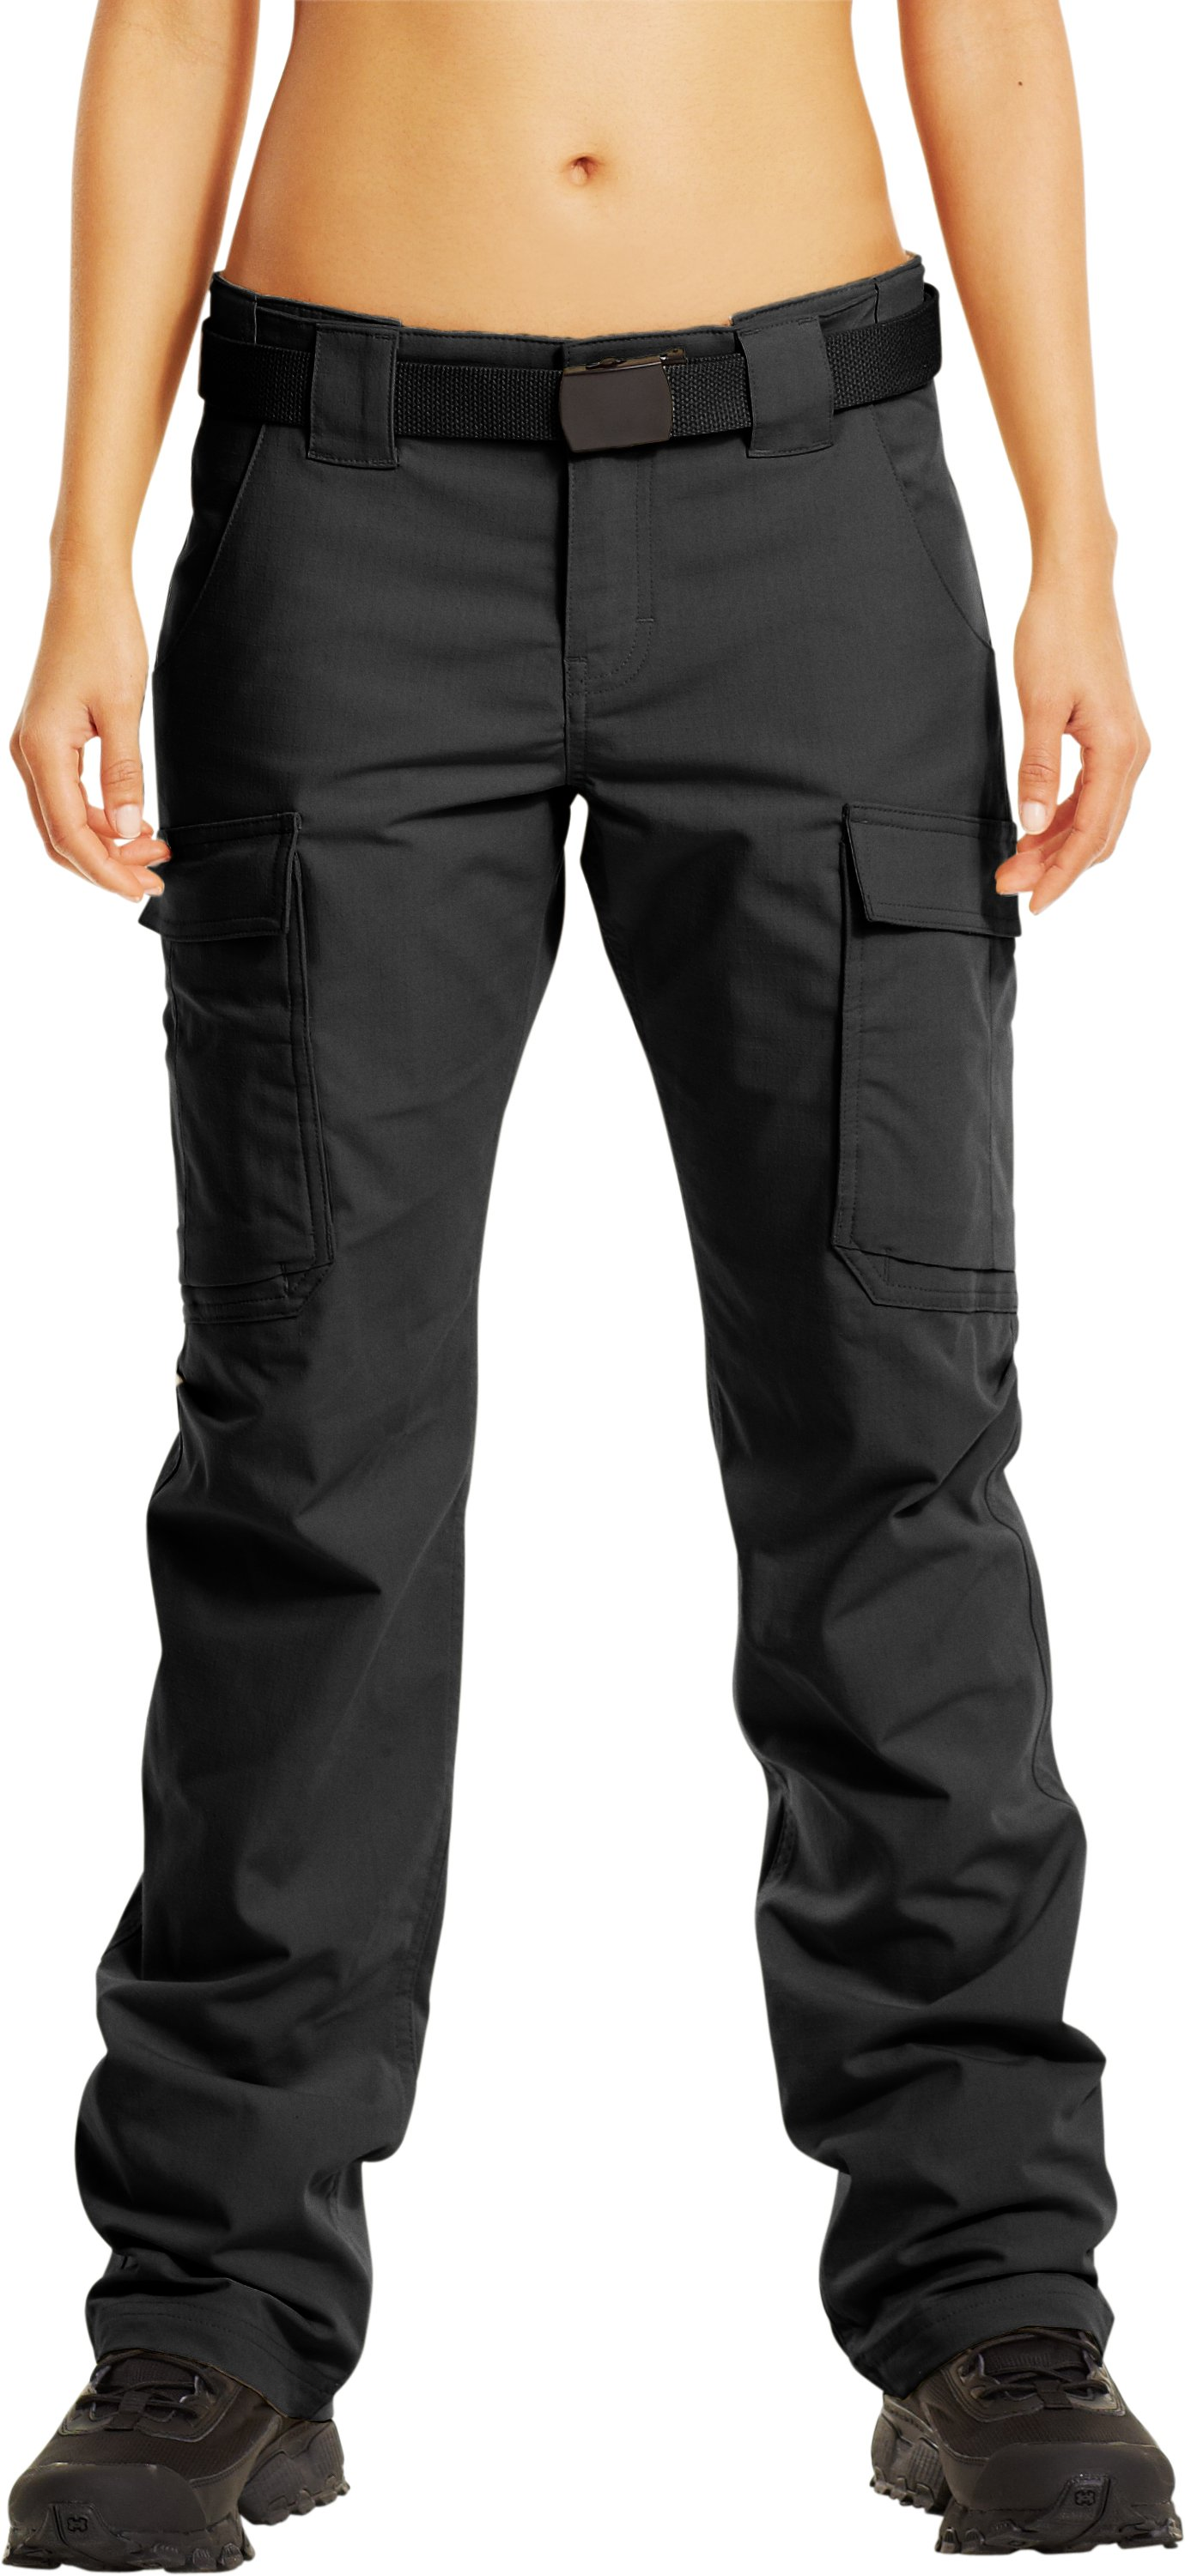 Women's Tactical Duty Pants, Black , zoomed image